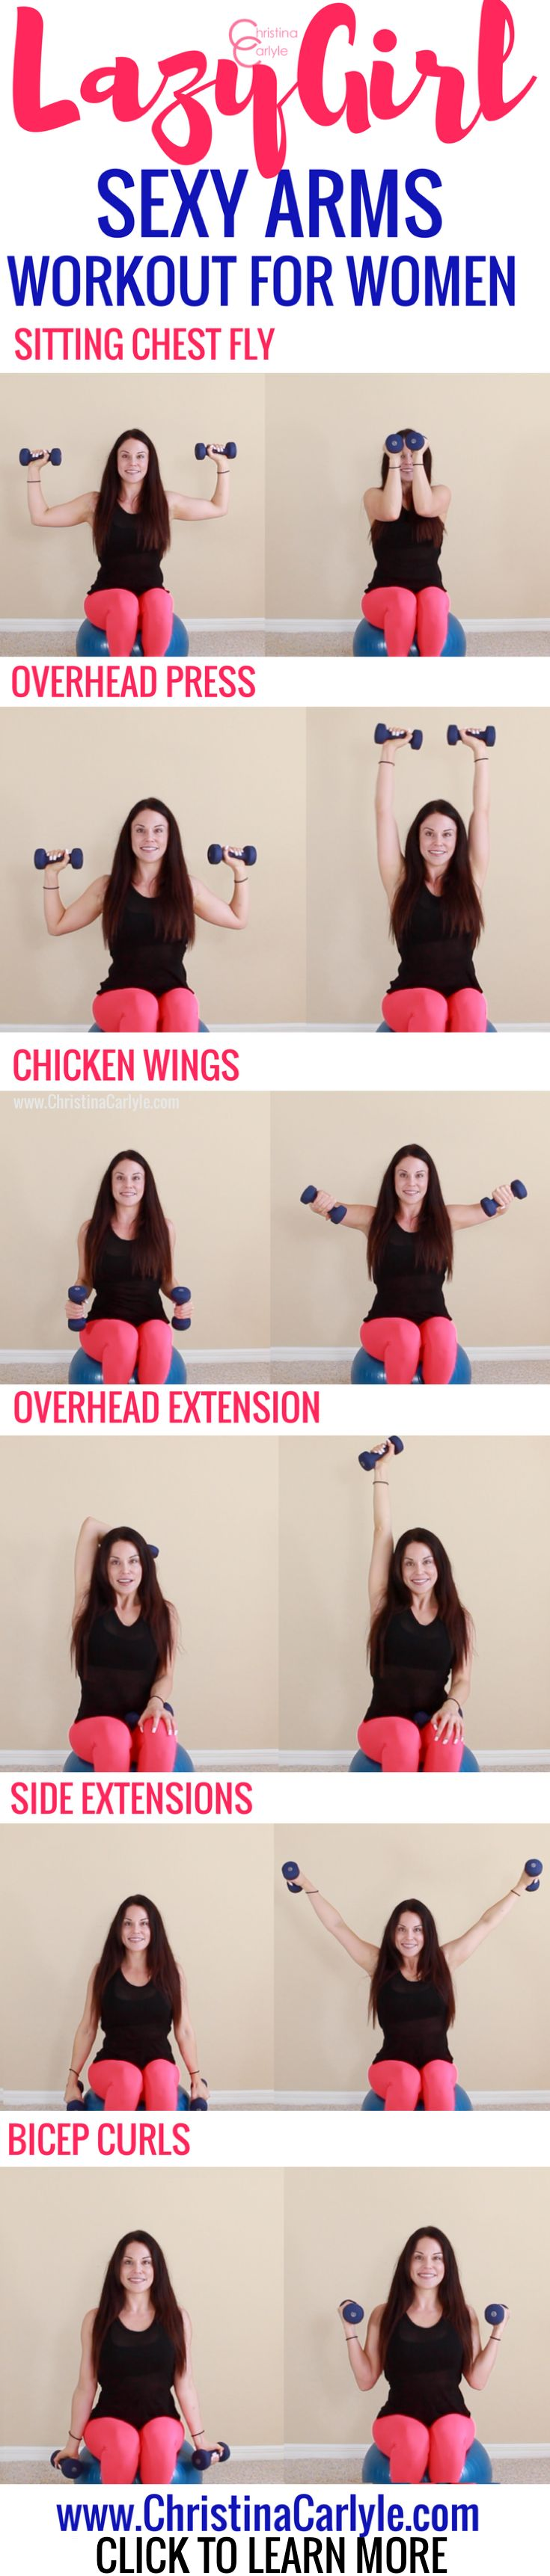 This lazy girl workout is perfect for days when you know you need to workout but just don't feel like it.  You can easily do these sitting down but they're really effective exercises for the arms.  So you can be lazy and still work on toning your arms at the same time.  #armworkout #lazygirl #fitness